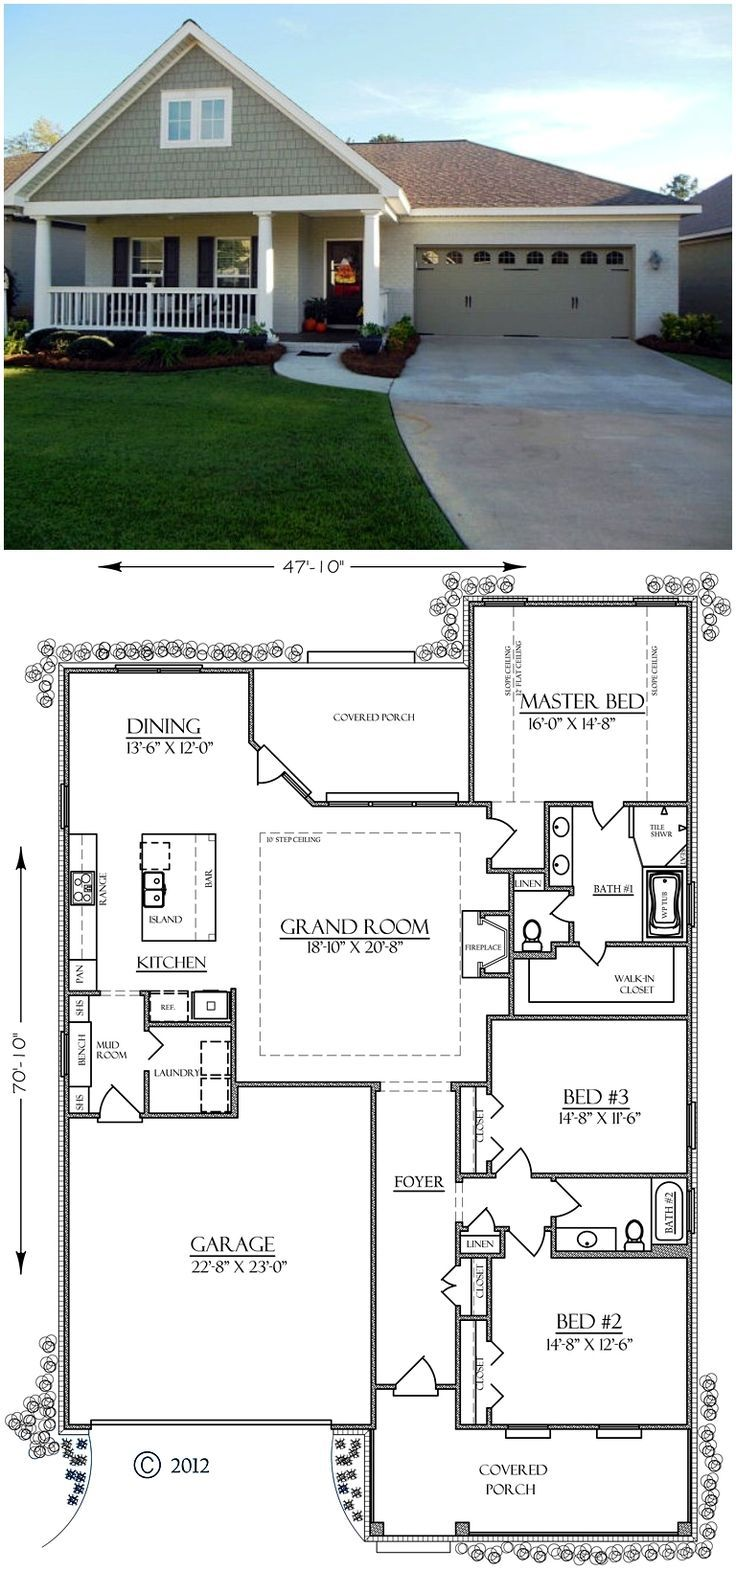 Photo of Finally, I would not change house plan 74755 structurally. Screen only …